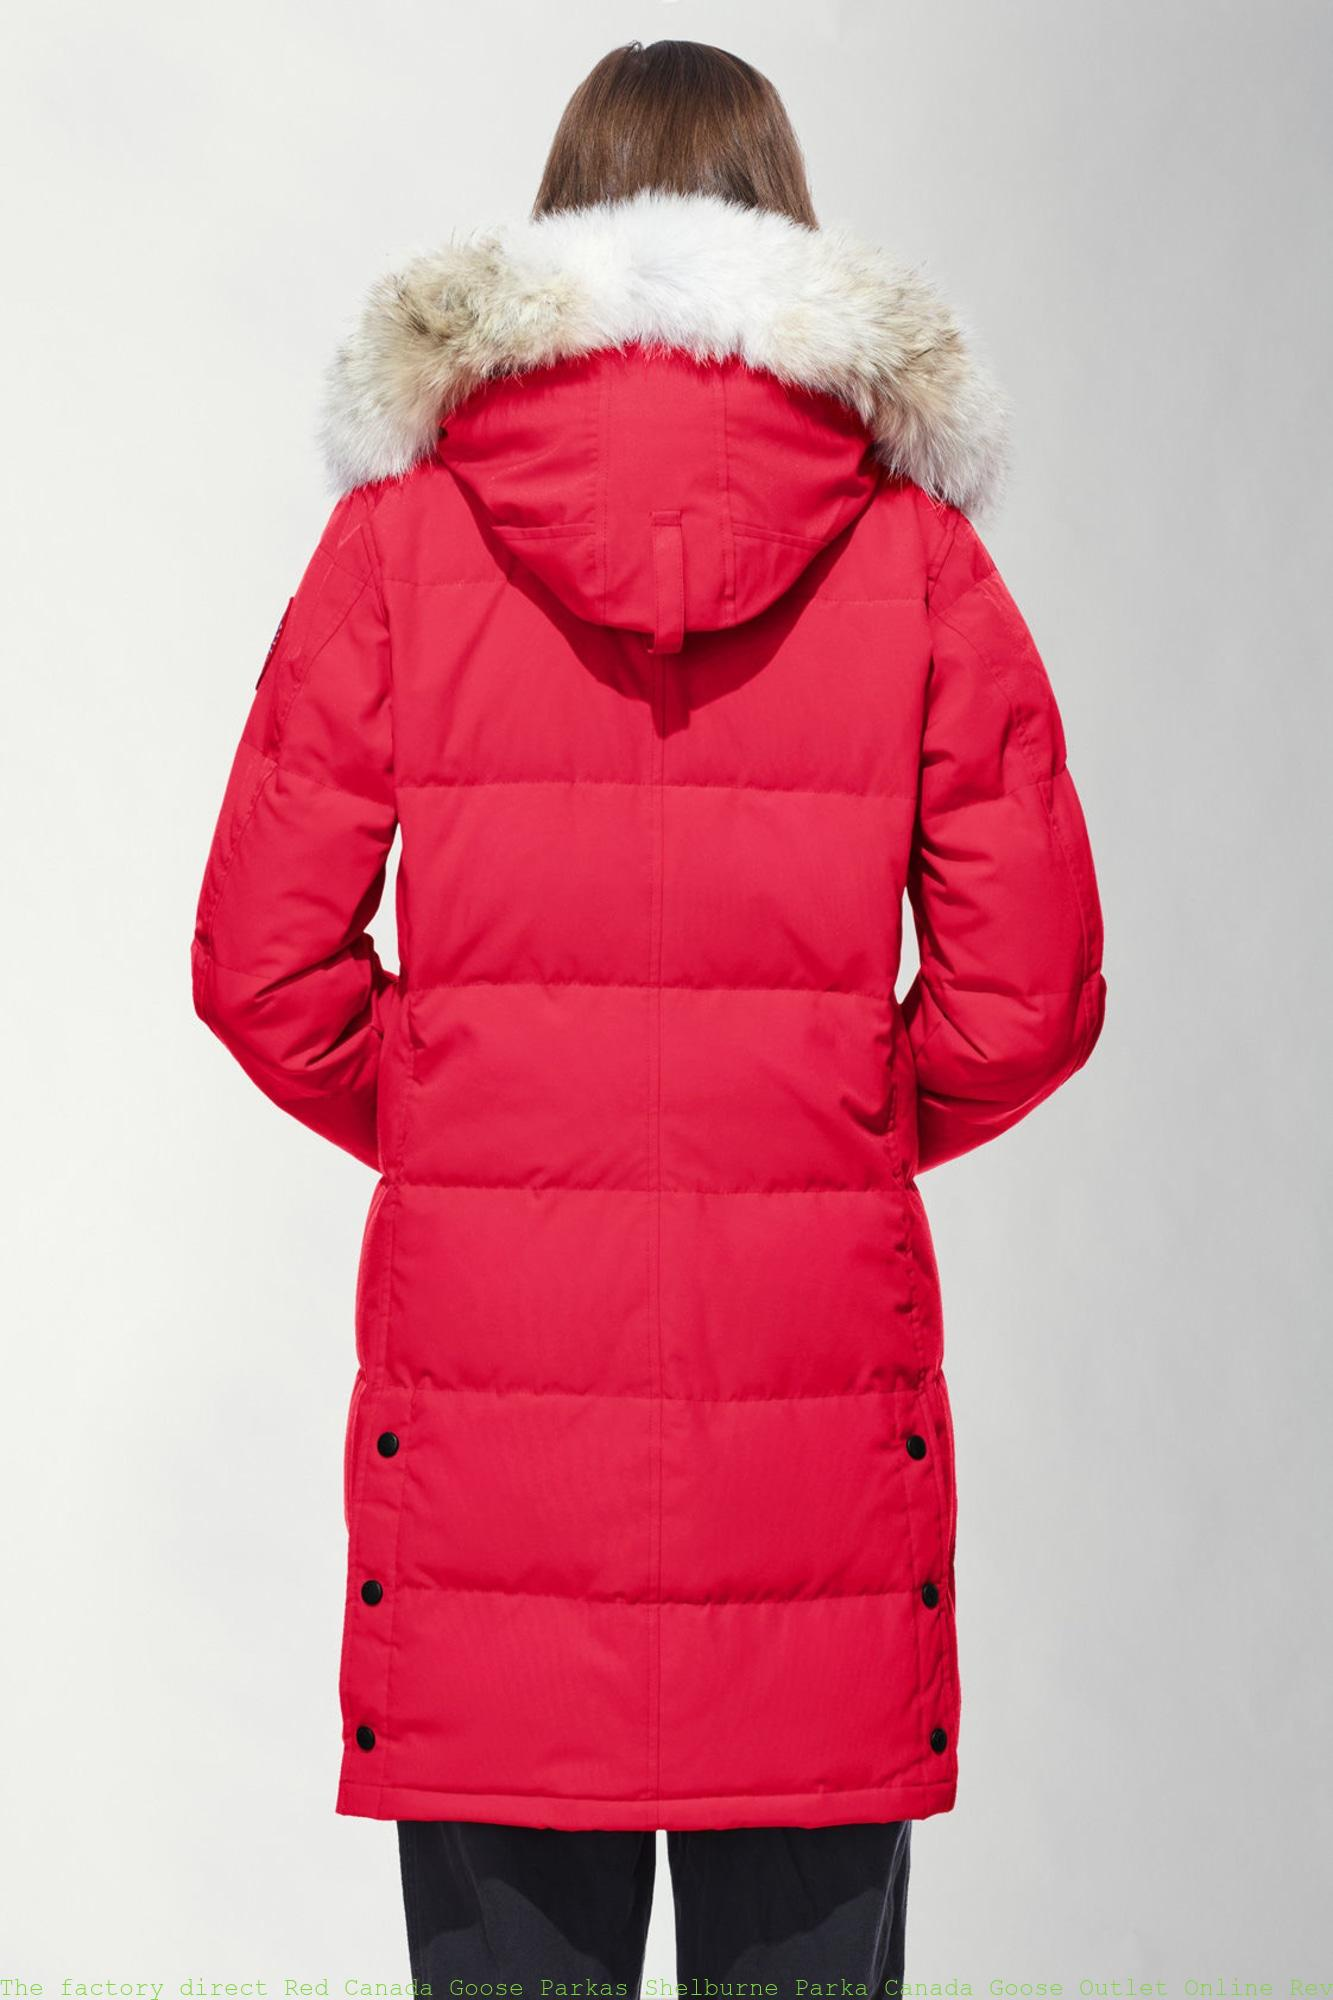 50e75c9e967 The factory direct Red Canada Goose Parkas Shelburne Parka Canada Goose  Outlet Online Reviews 3802L